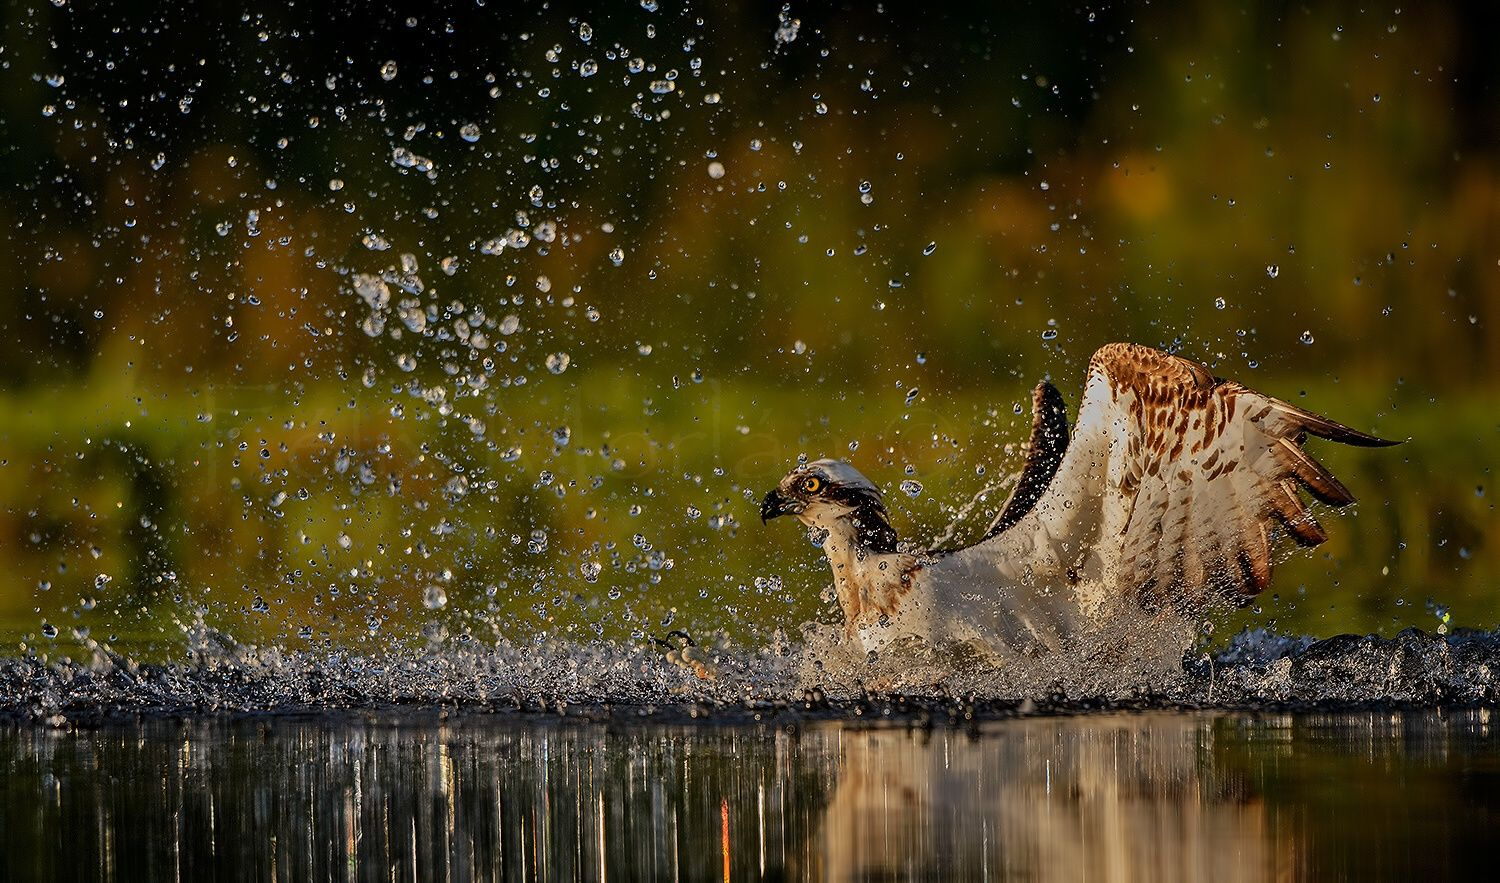 Explosion in water by Félix Morlán González on 500px